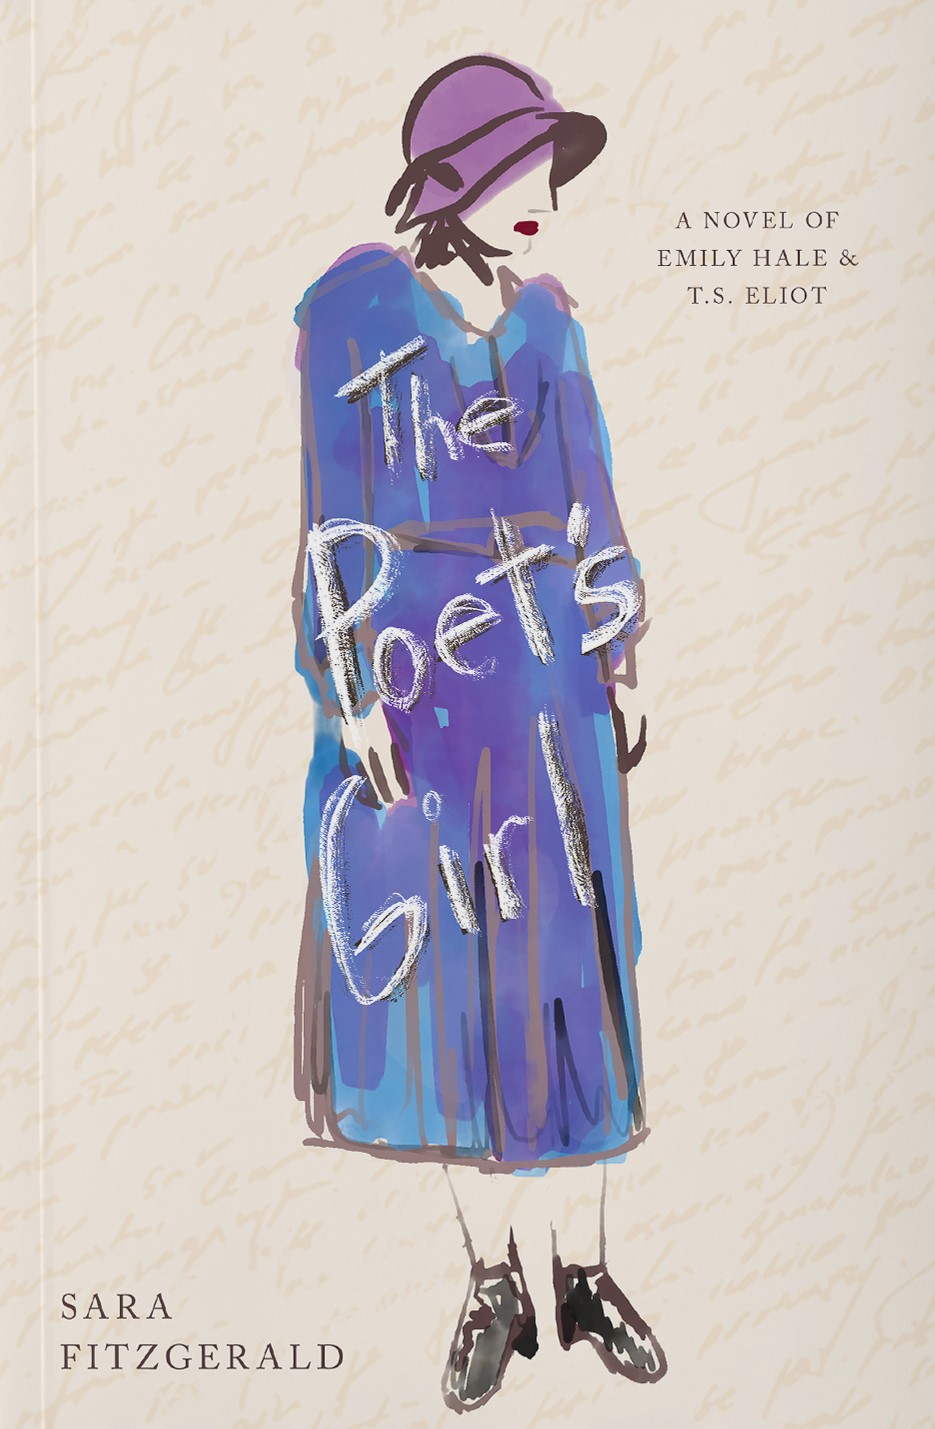 The Poet's Girl: A Novel of Emily Halre & T.S. Eliot